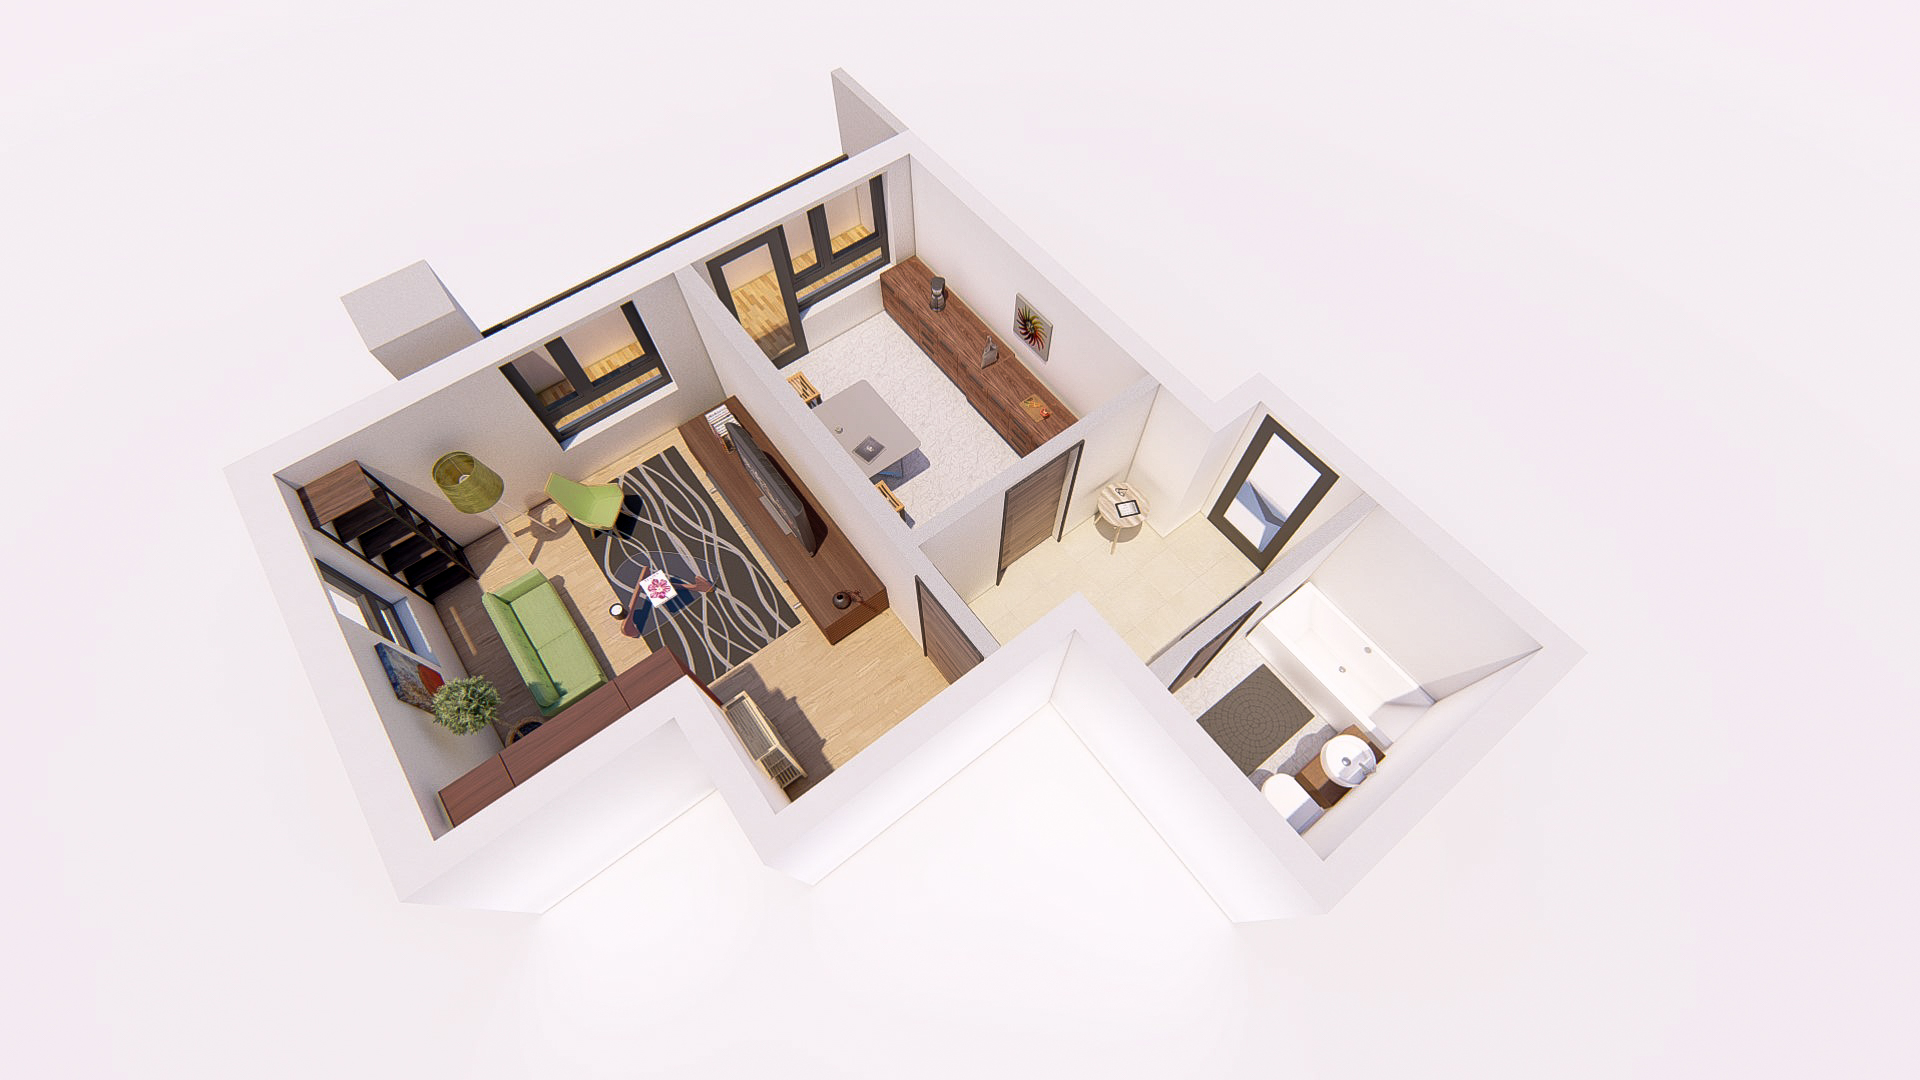 Romeo_Photo - 1